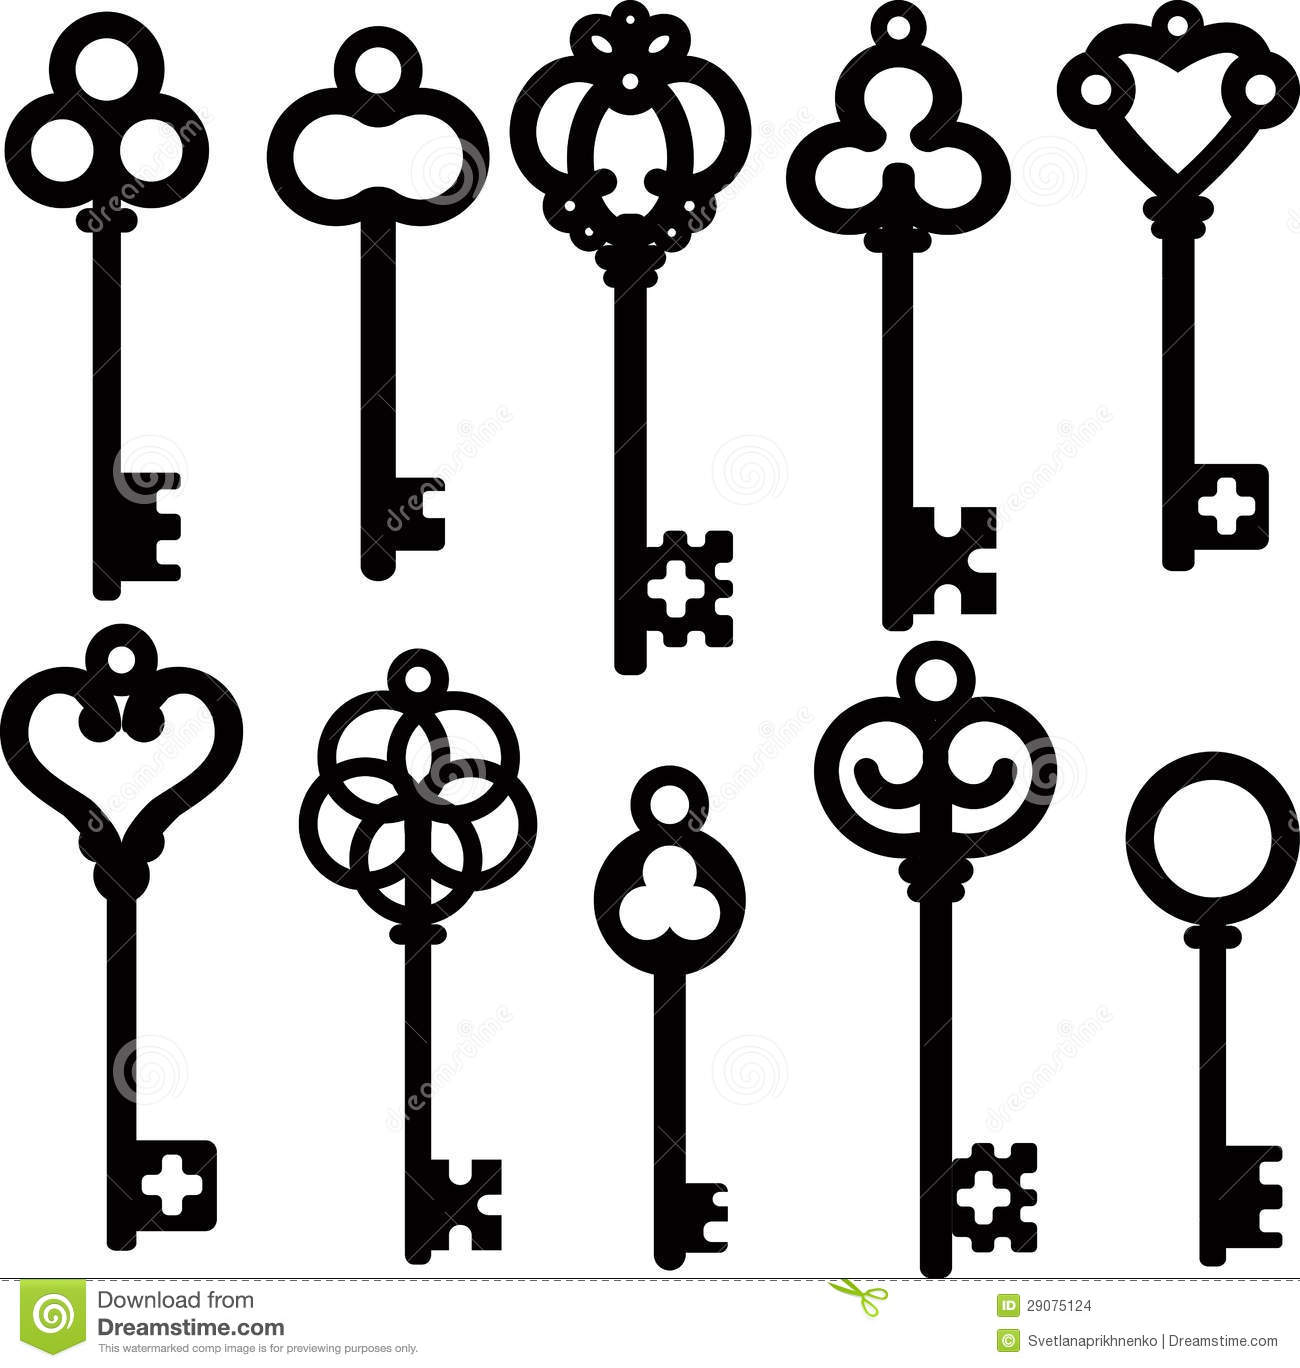 Alice In Wonderland clipart key And table tallest ideas tallest